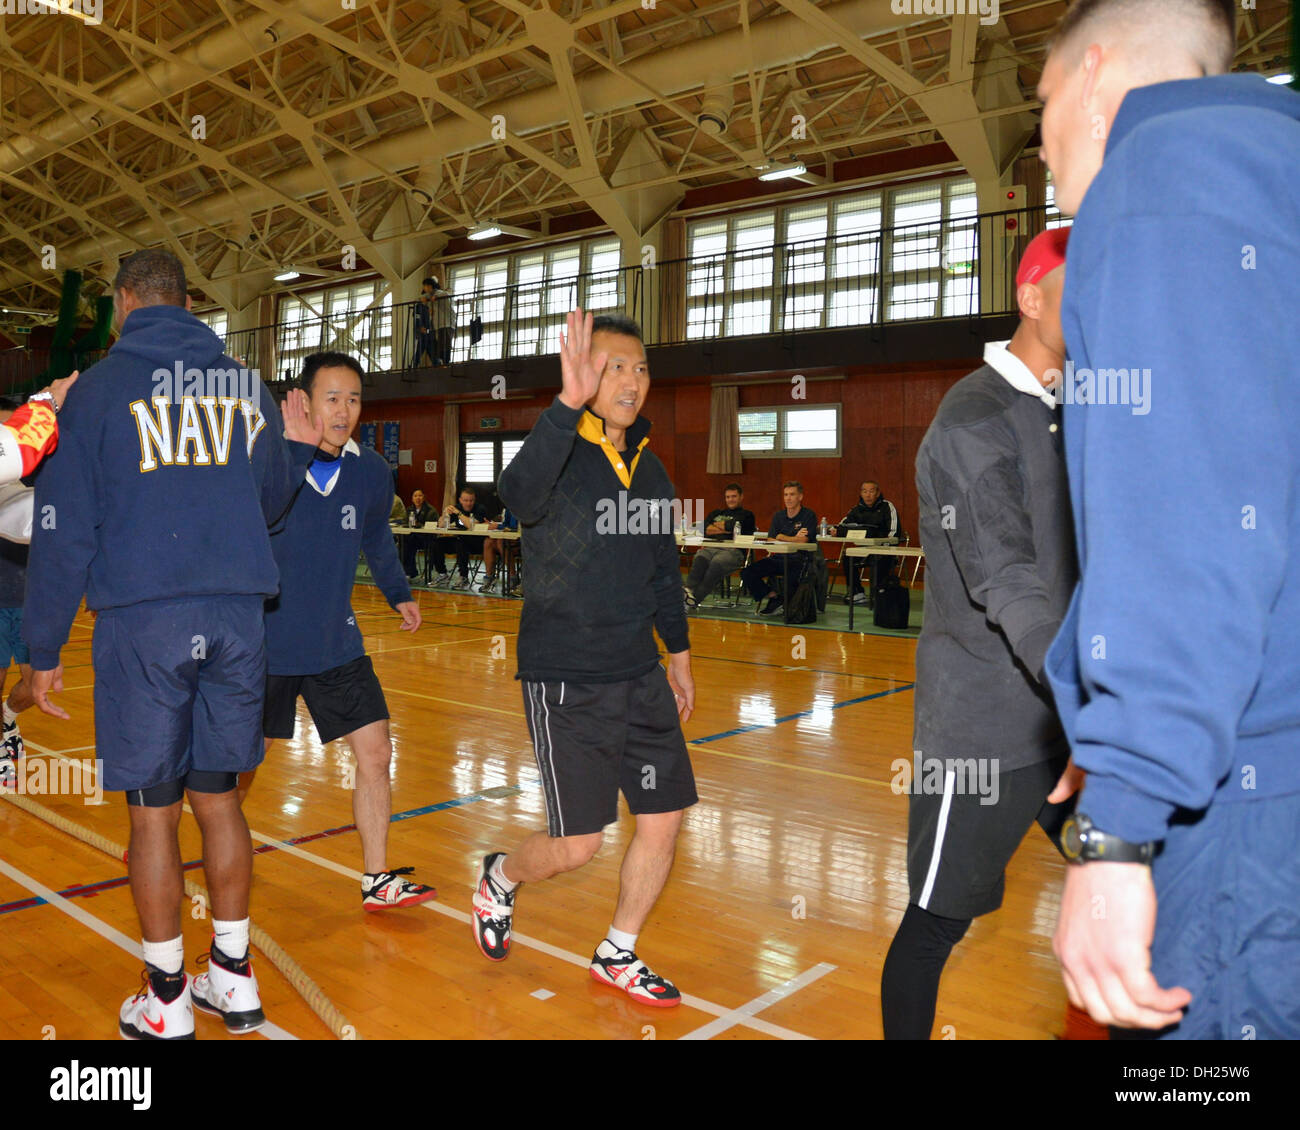 MISAWA AIR BASE, Japan (Oct. 26, 2013) Navy Misawa Chief Petty Officer Association members high-five members of the Japan Air Self-Defense Force at the 12th Annual Northern Air Defense Force Commanders Cup Tug-of-War Tournament, Oct. 26, 2013. This annual - Stock Image